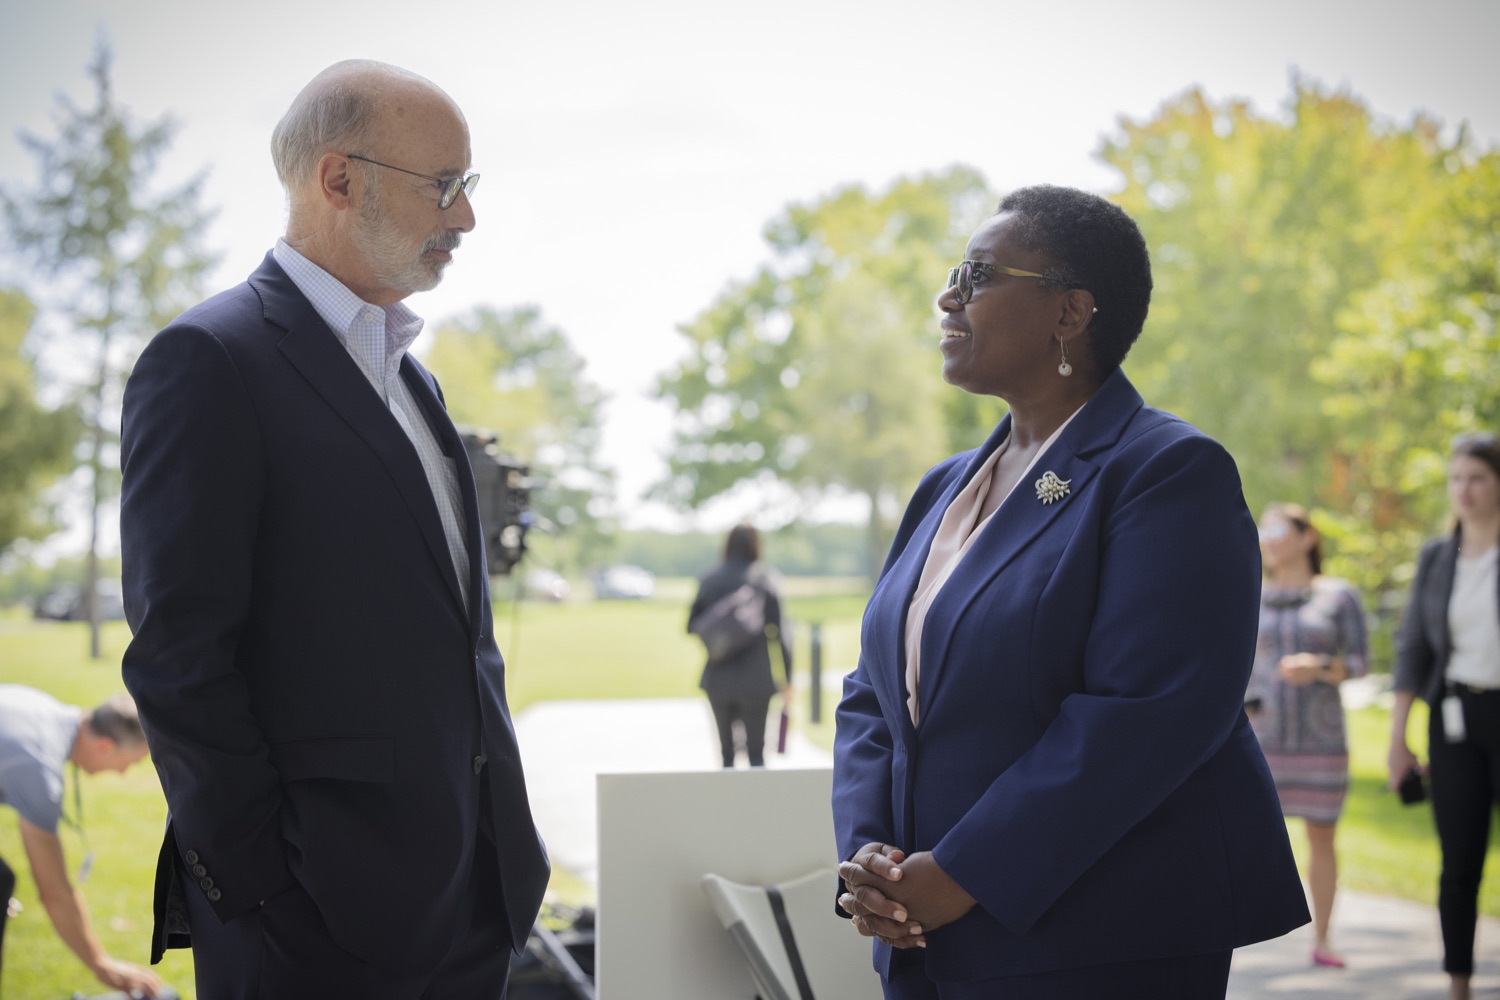 """<a href=""""https://filesource.wostreaming.net/commonwealthofpa/photo/19111_gov_parkVaccines_dz_015.jpg"""" target=""""_blank"""">⇣Download Photo<br></a>Pennsylvania Governor Tom Wolf speaking with Acting Physician General Dr. Denise Johnson. Governor Tom Wolf today announced that the Department of Health (DOH) and Department of Conservation and Natural Resources (DCNR) are partnering to hold COVID-19 vaccine clinics at five state parks across the commonwealth to help expand access to the COVID-19 vaccine.  Harrisburg, PA -- September 10, 2021"""